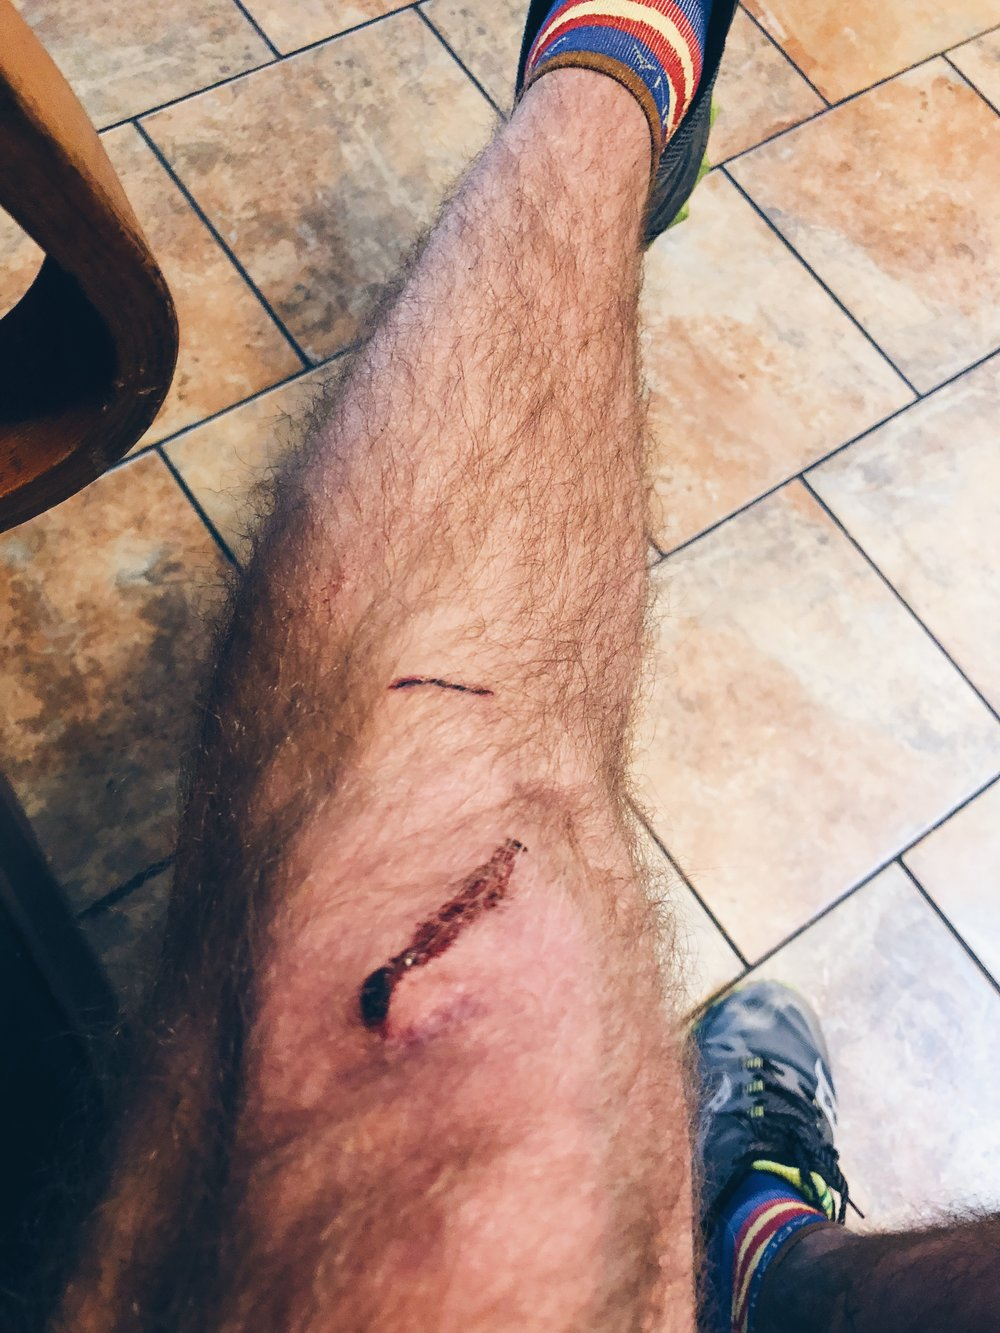 Sliced up knee from the wreck (also wearing my favorite Arizona socks!)